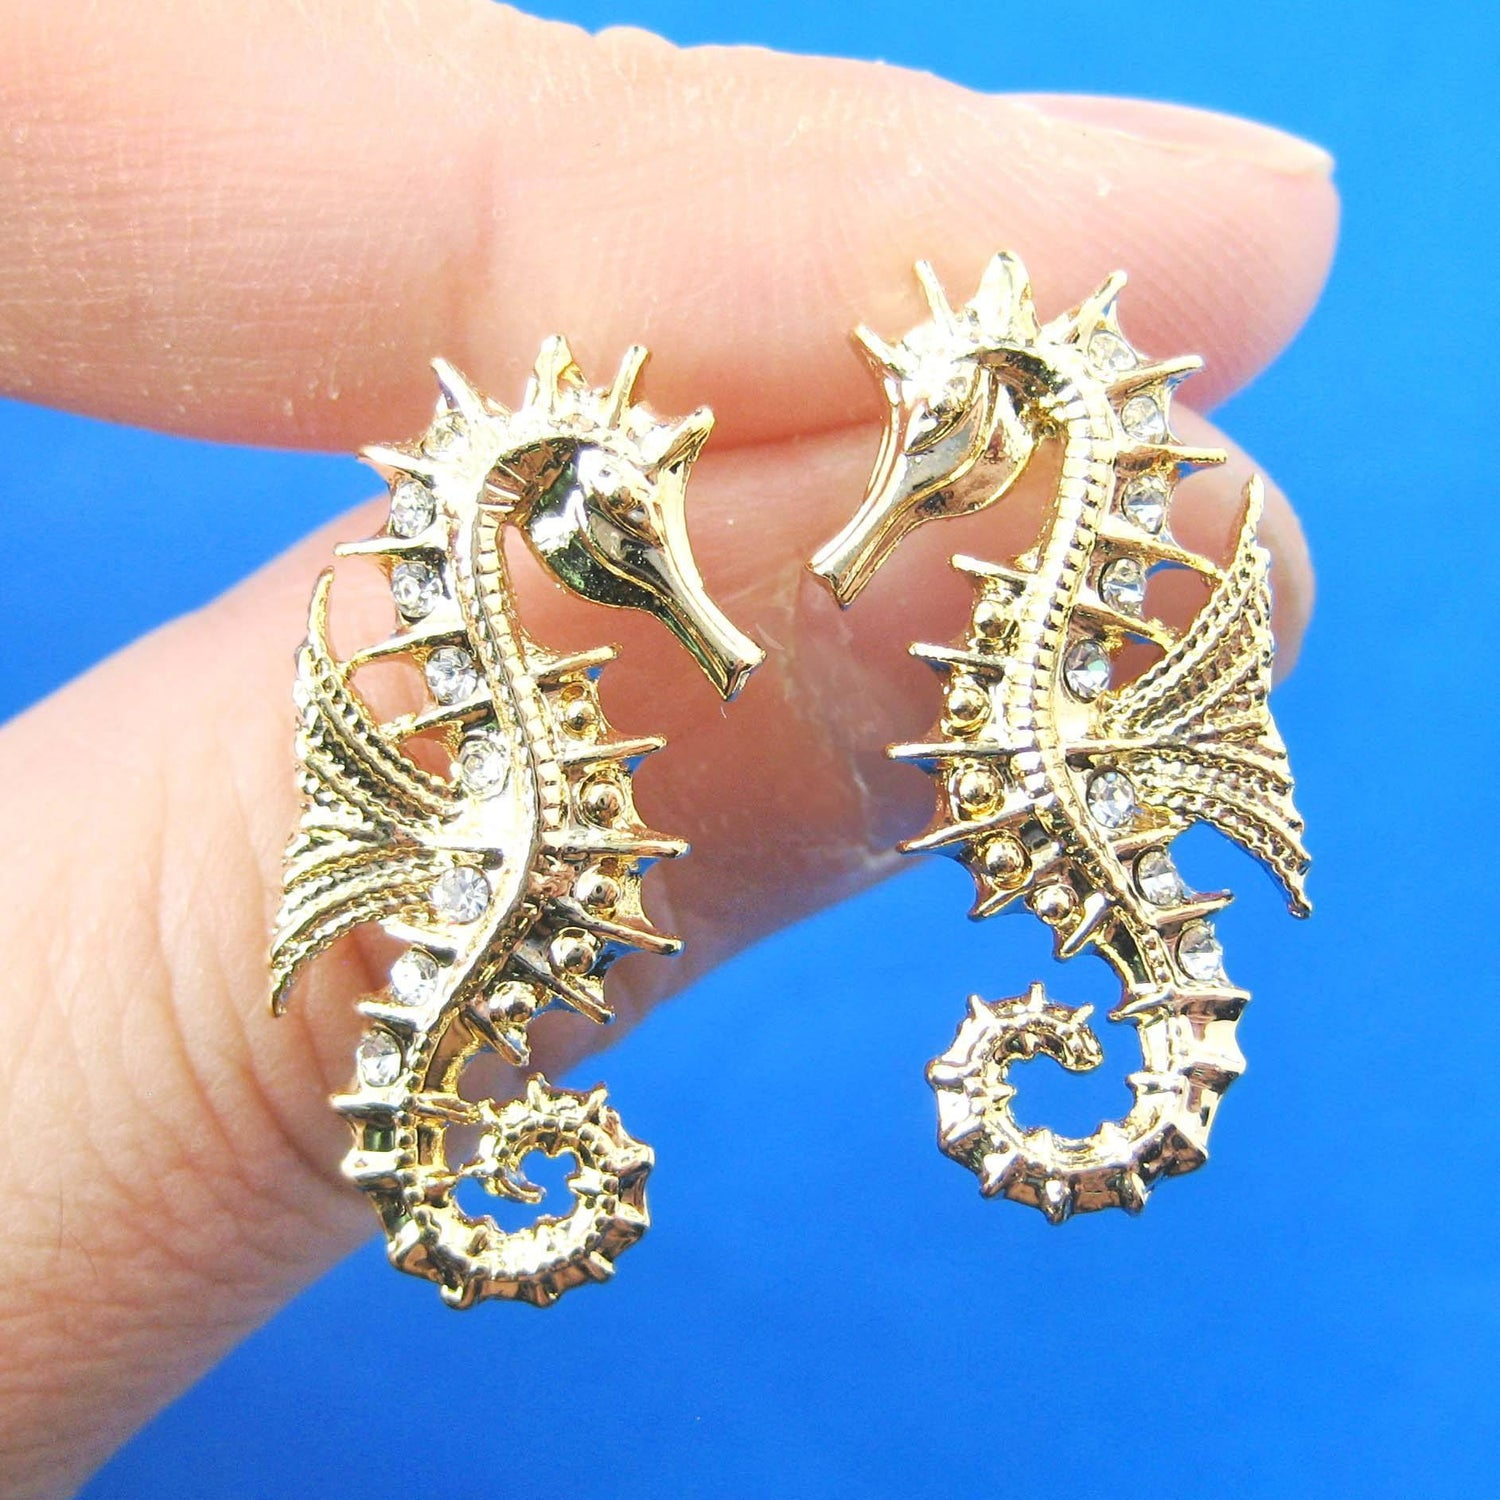 0d89f4a84 Seahorse Sea Animal Shaped Stud Earrings in Gold   Animal Jewelry